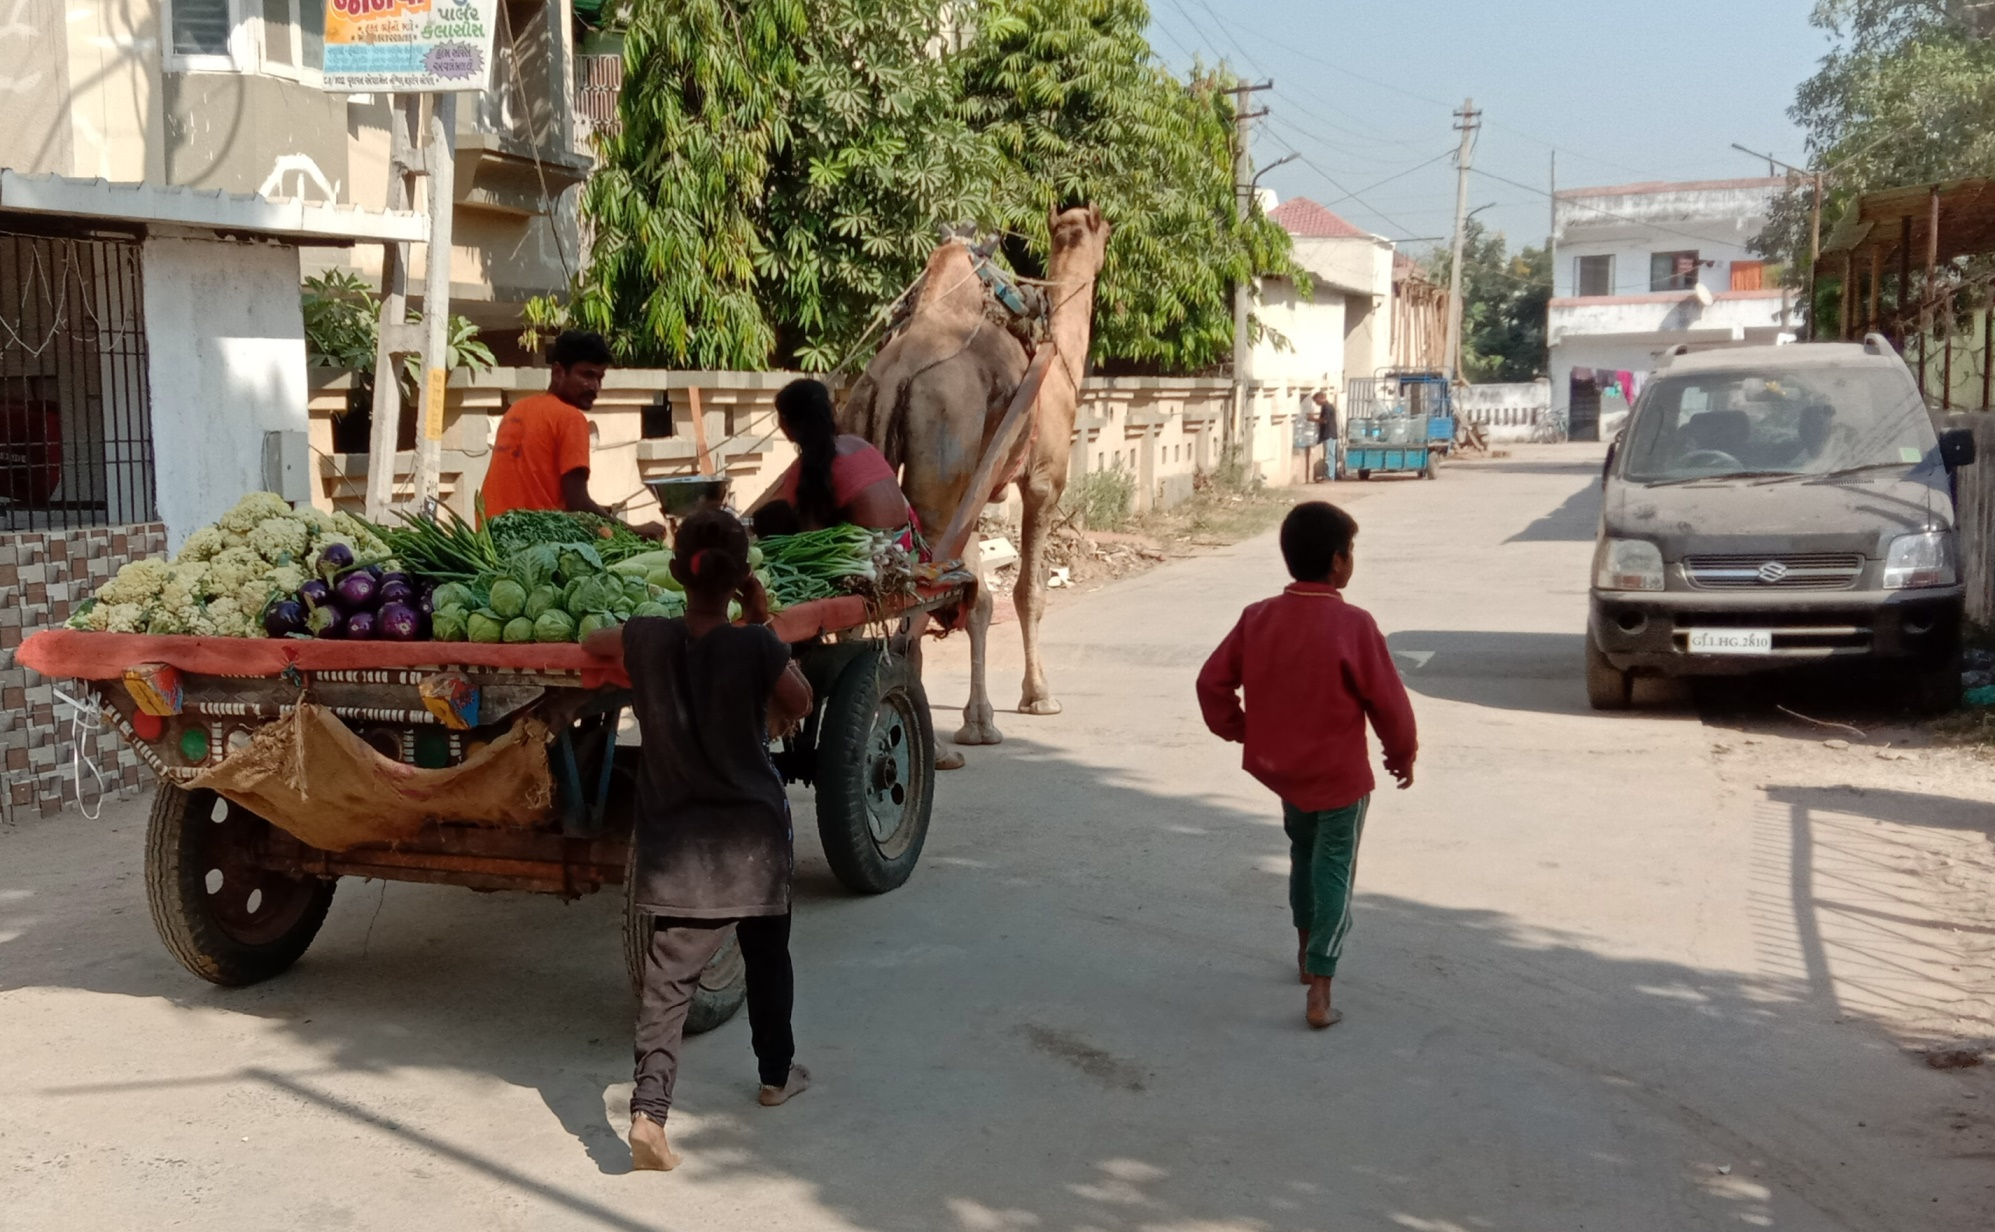 In Ahmedabad Gujarat this is a normal picture where vendor sell vegetables on camel cart. But for many  people this  is something new. One can see a whole family is selling on cart and they are searching for customers. I wanted to frame this as this may be an unusual concept for many.